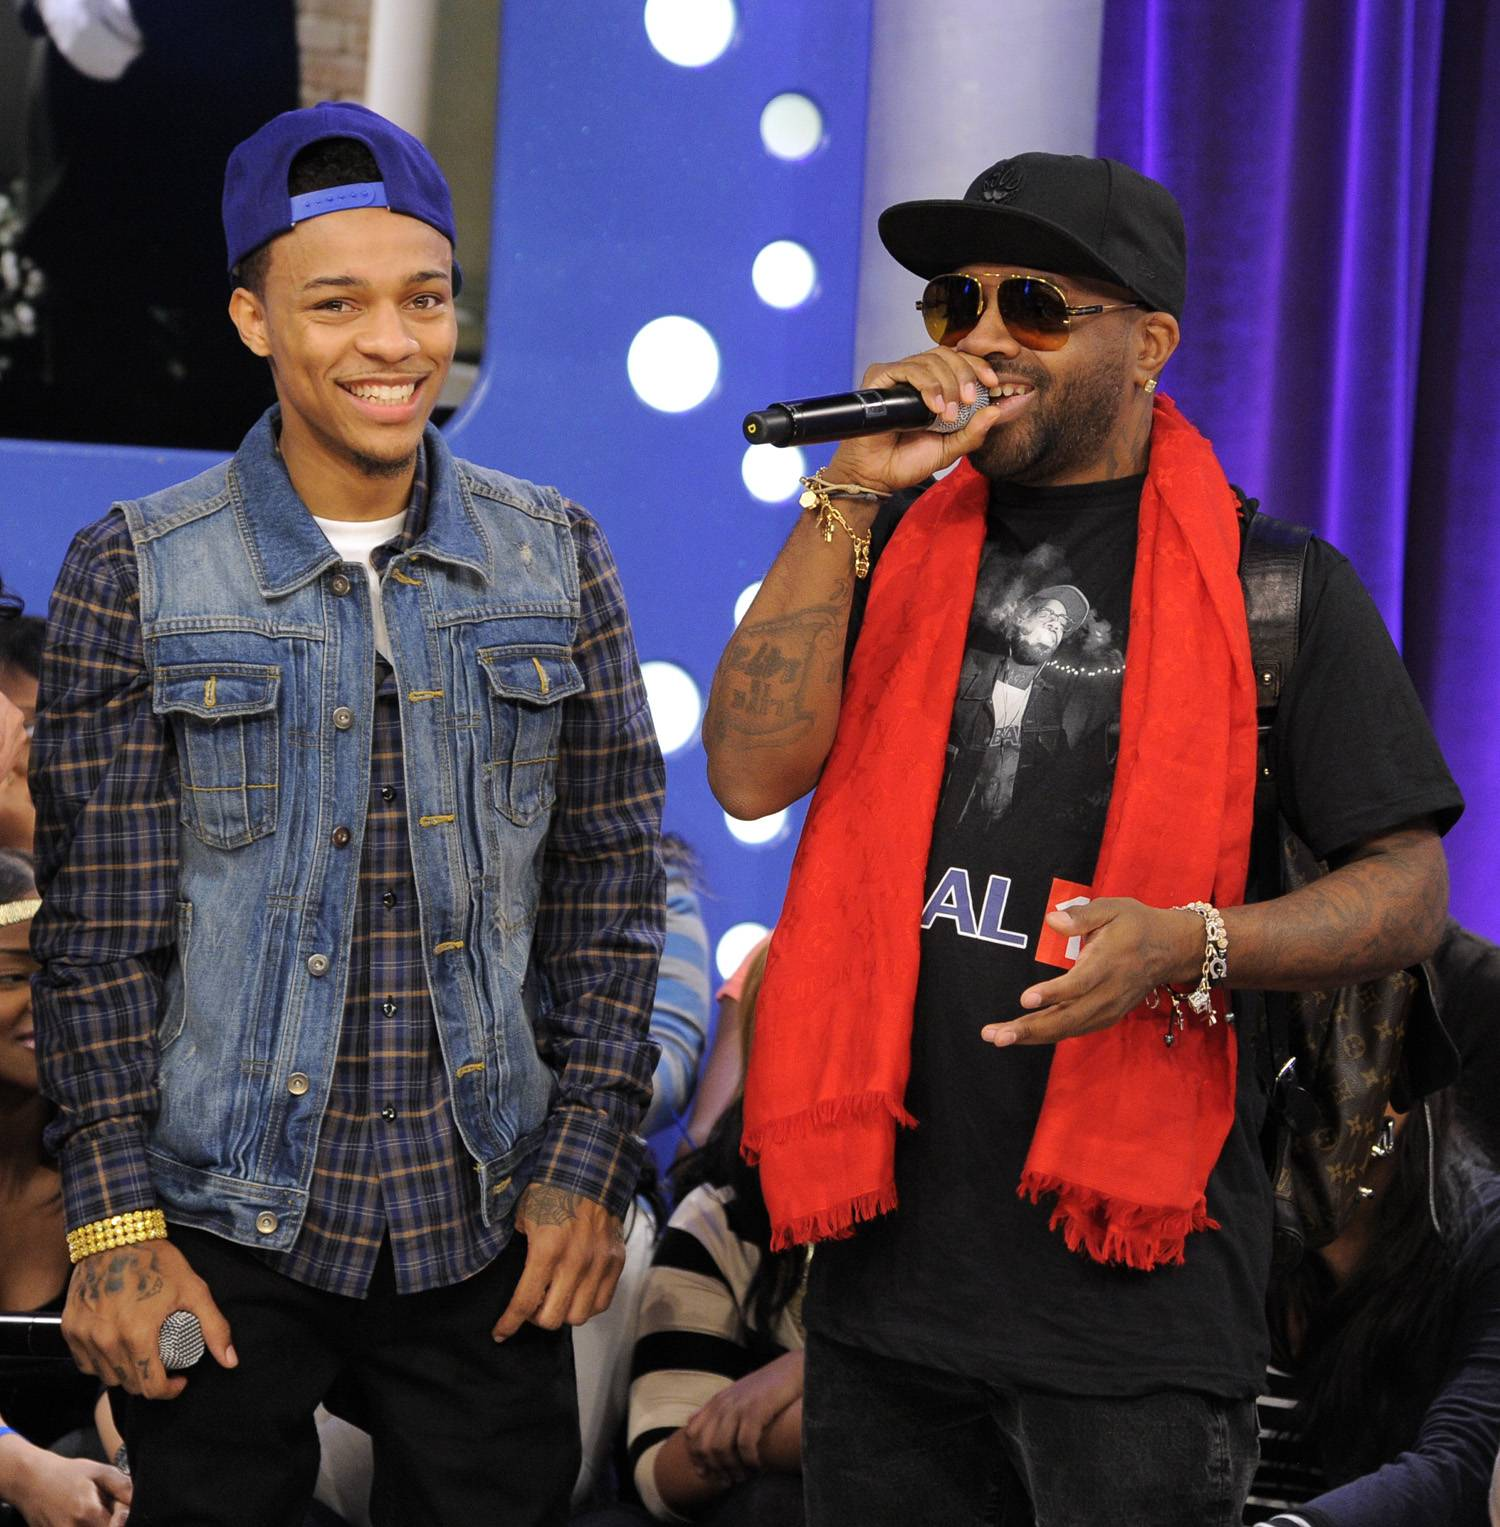 He Was Bad - Bow Wow with Jermaine Dupree at 106 & Park, January 23, 2012. (Photo: John Ricard / BET)